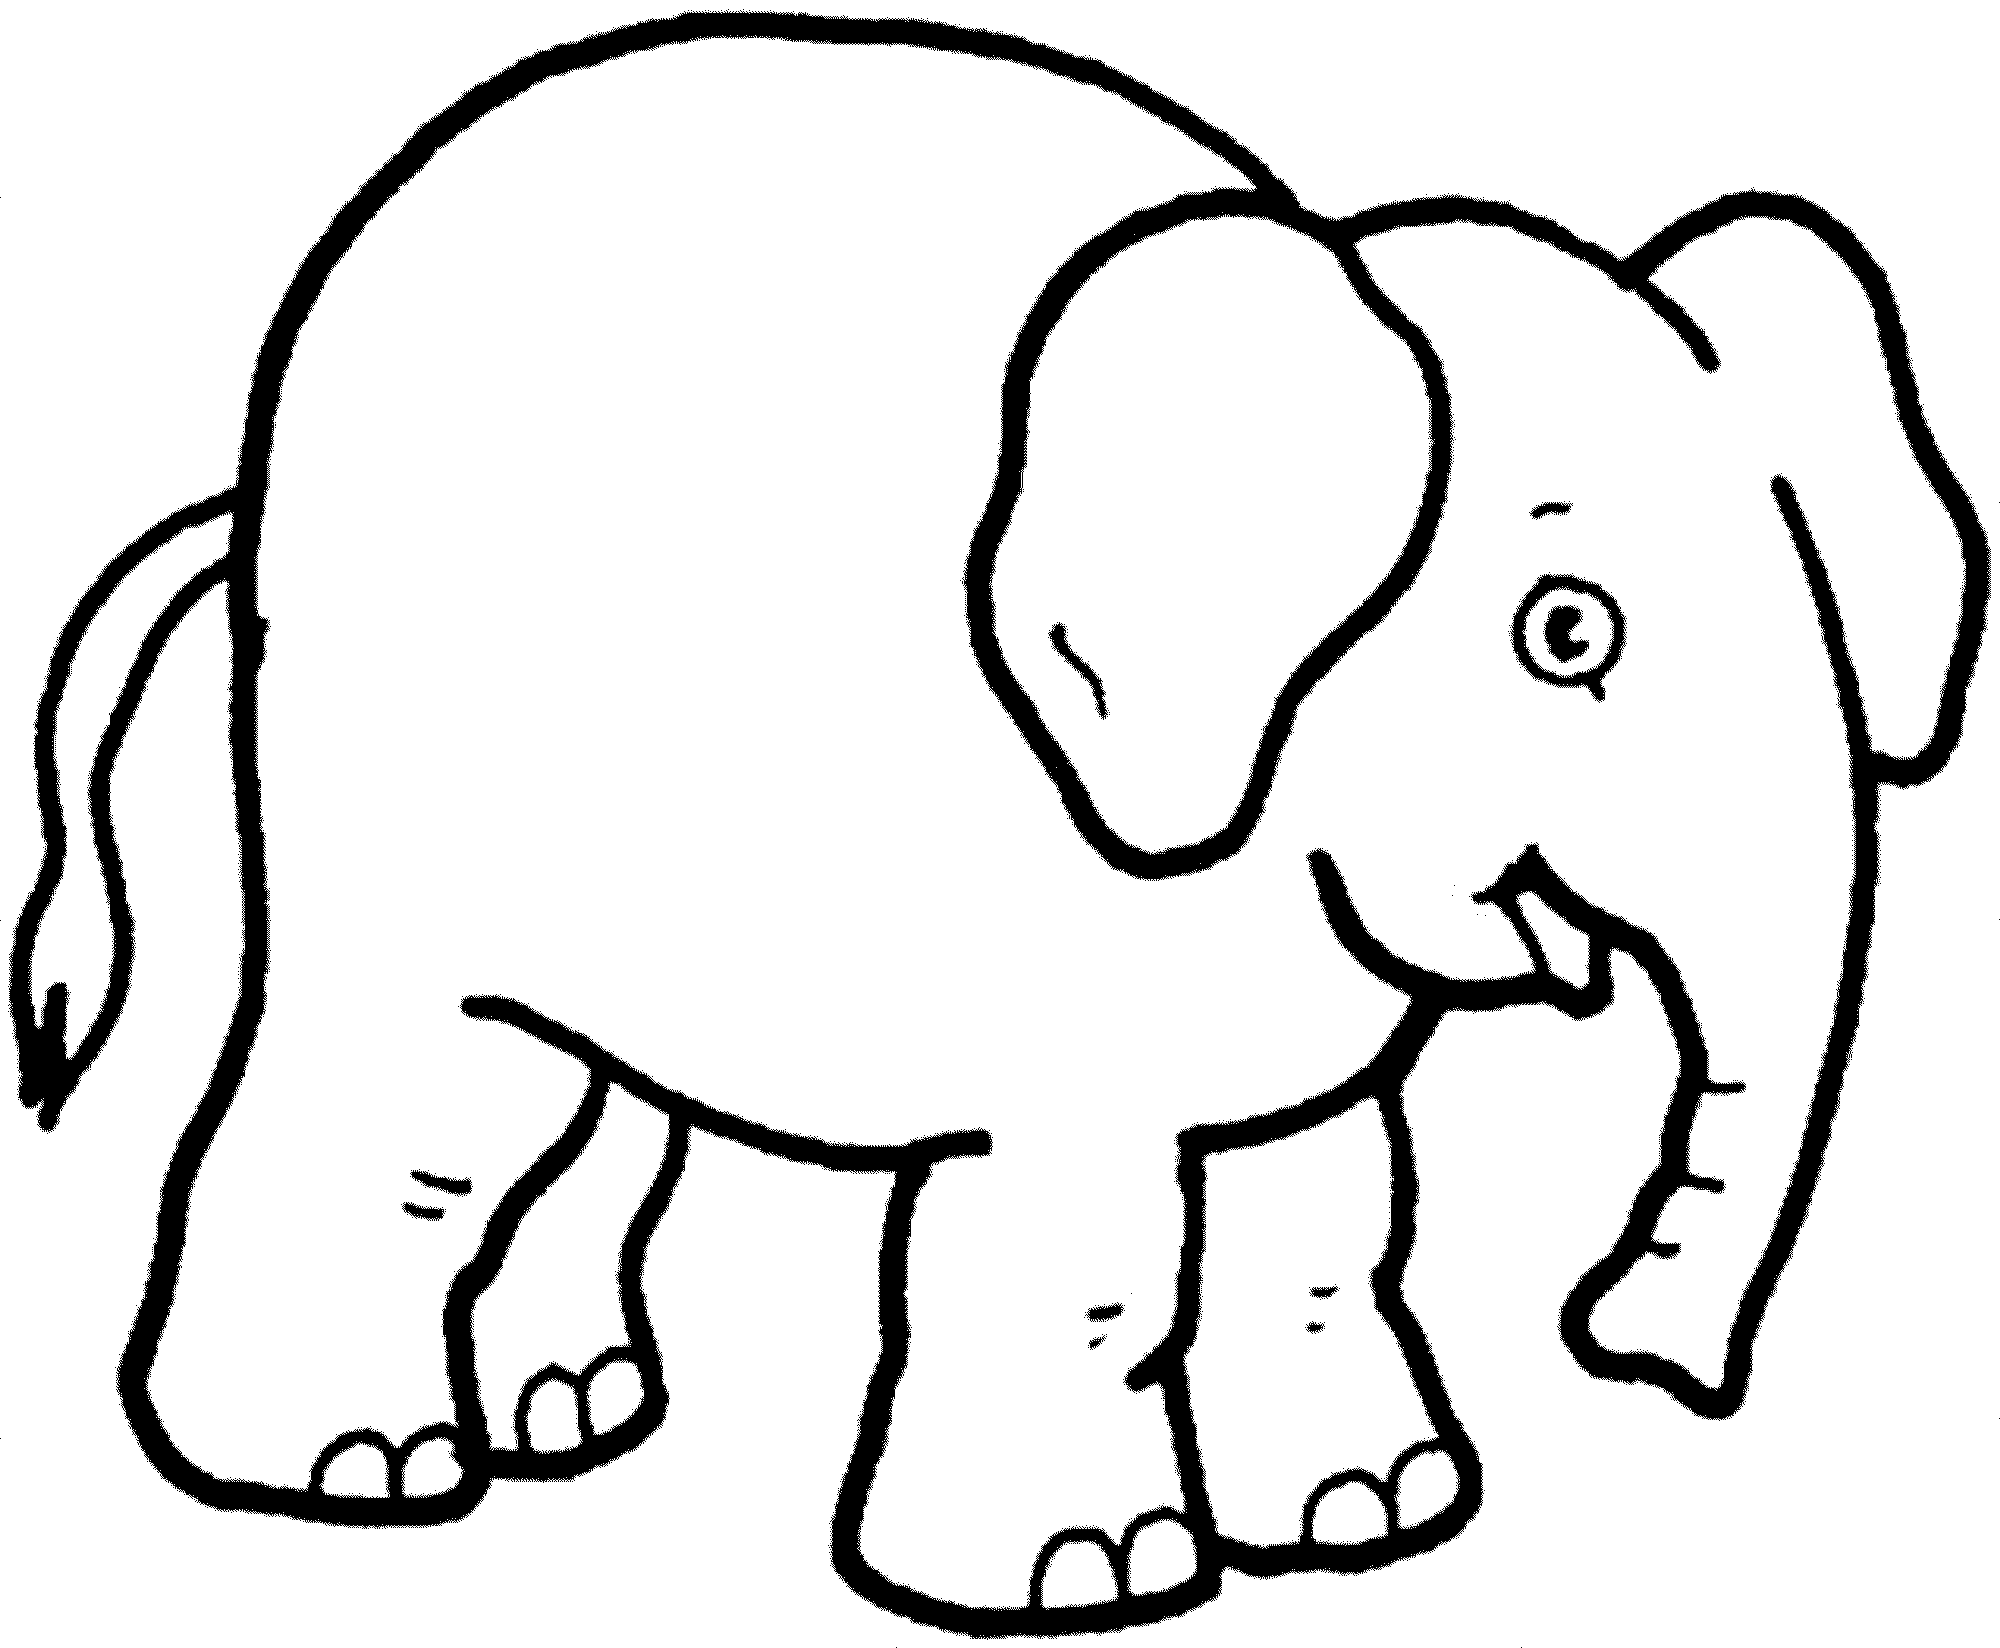 elephant images for colouring cute baby elephant coloring pages sketch coloring page for colouring elephant images